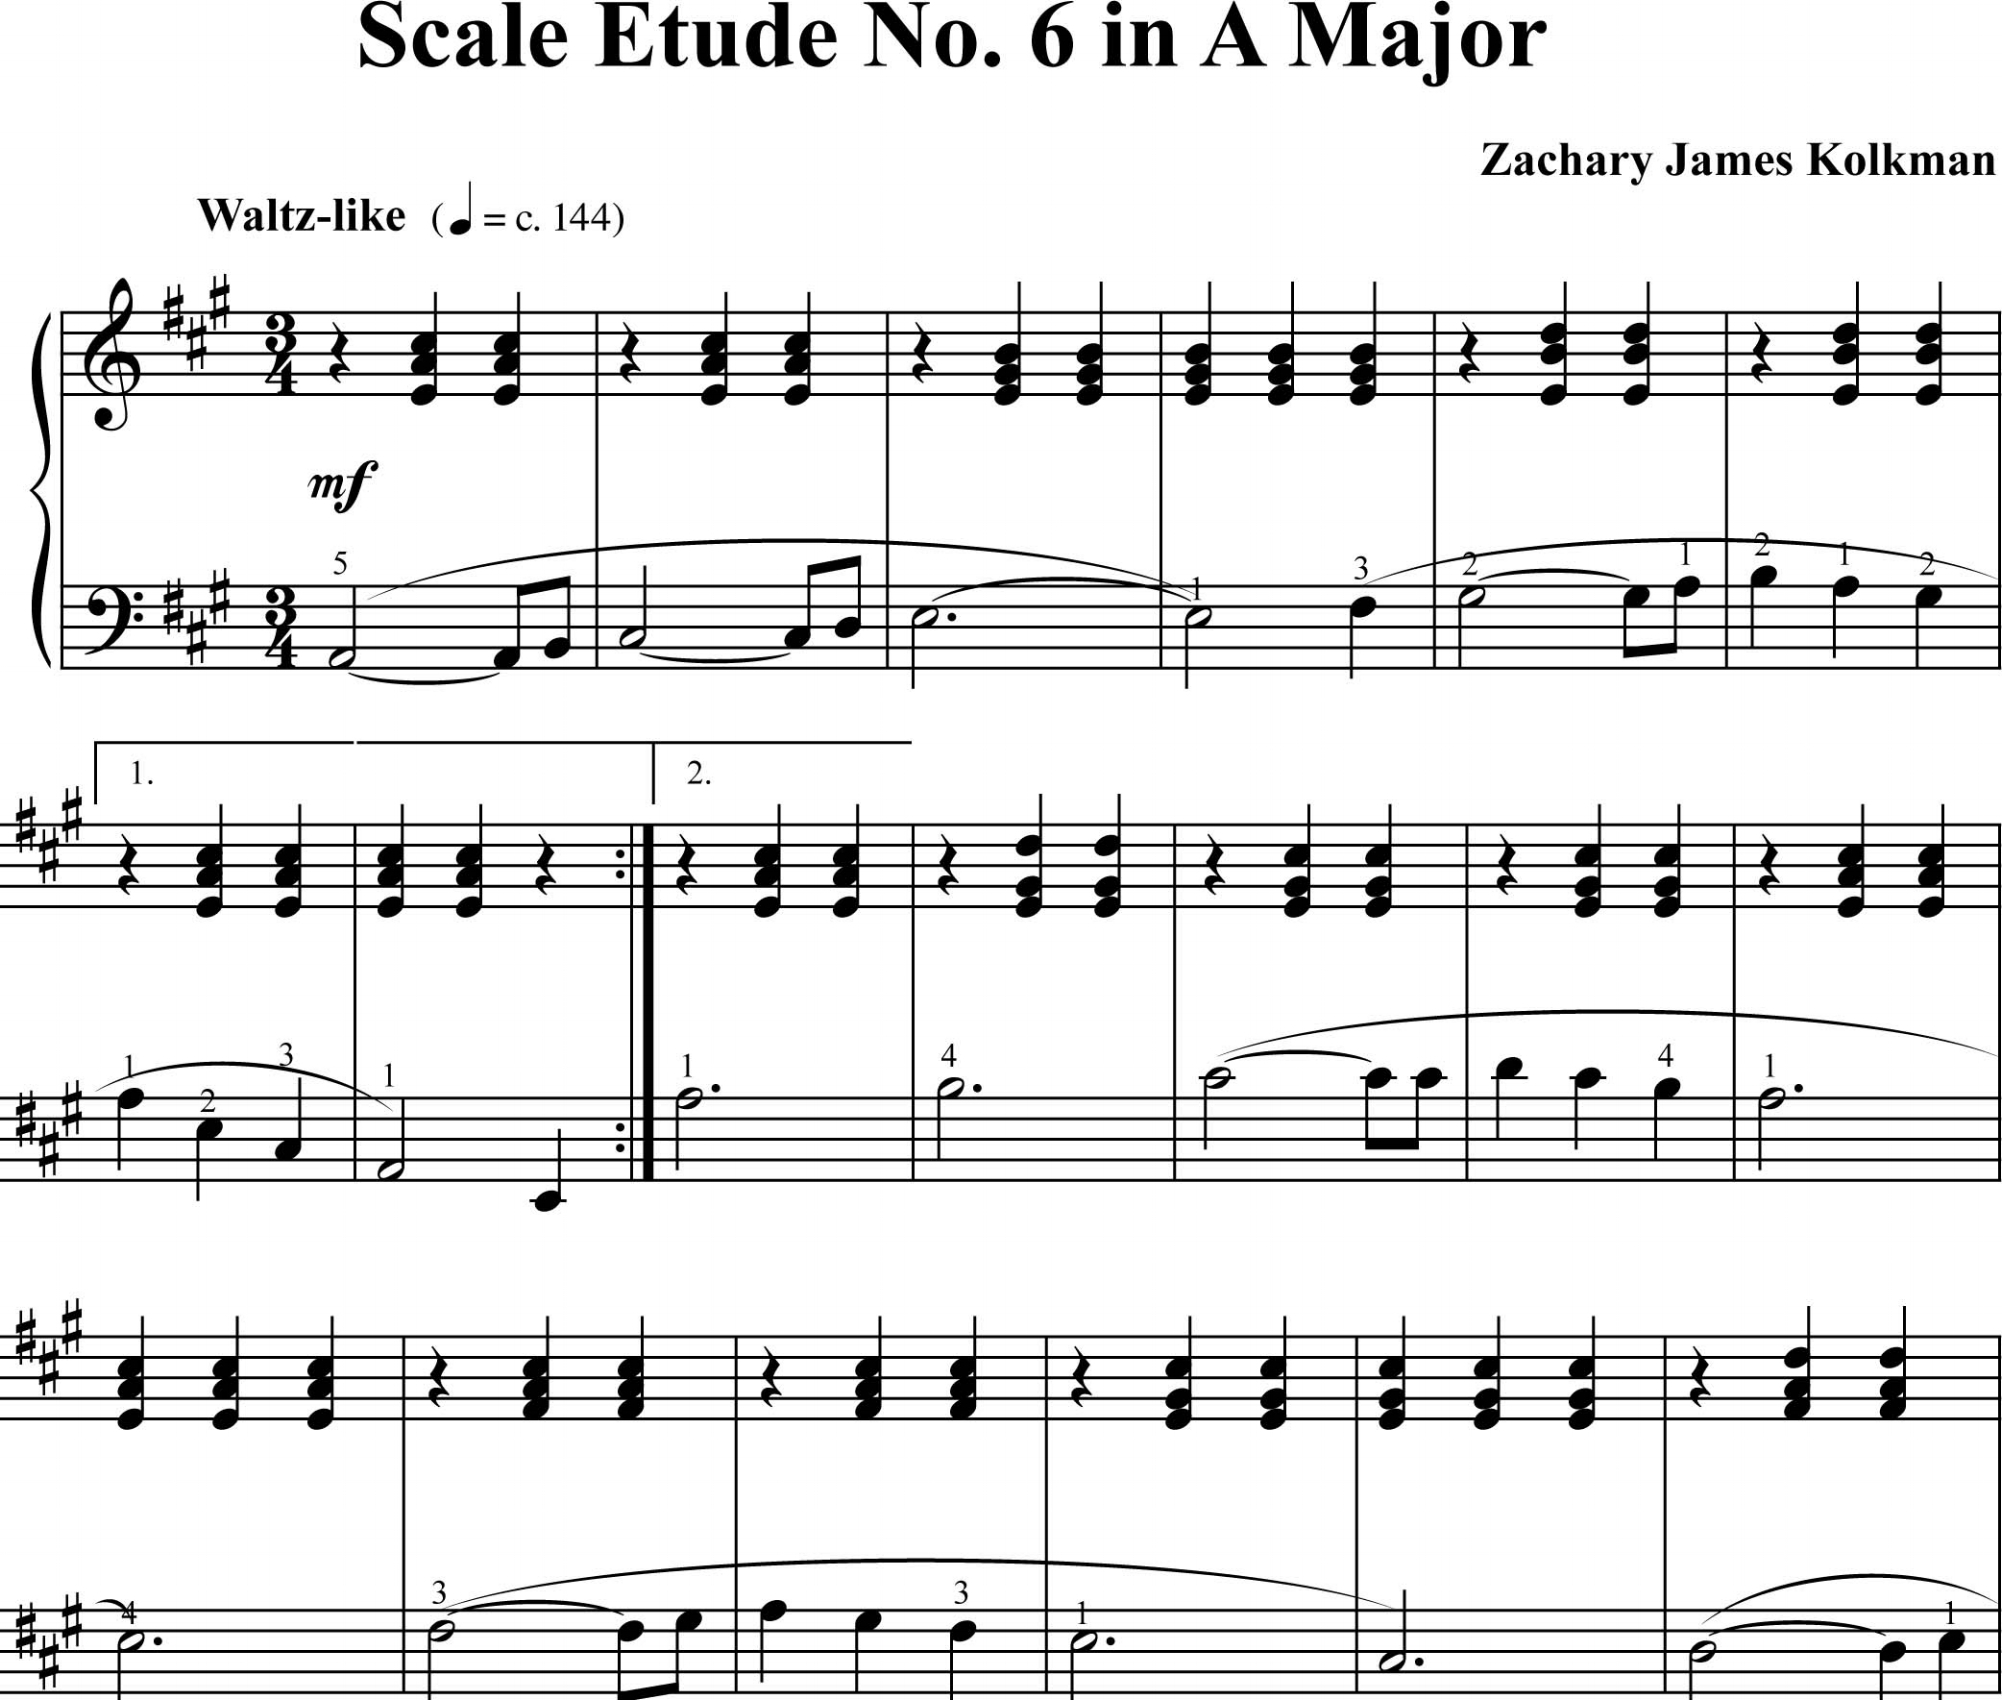 Sheet Music Download:  Scale Etude No. 6 in A Major